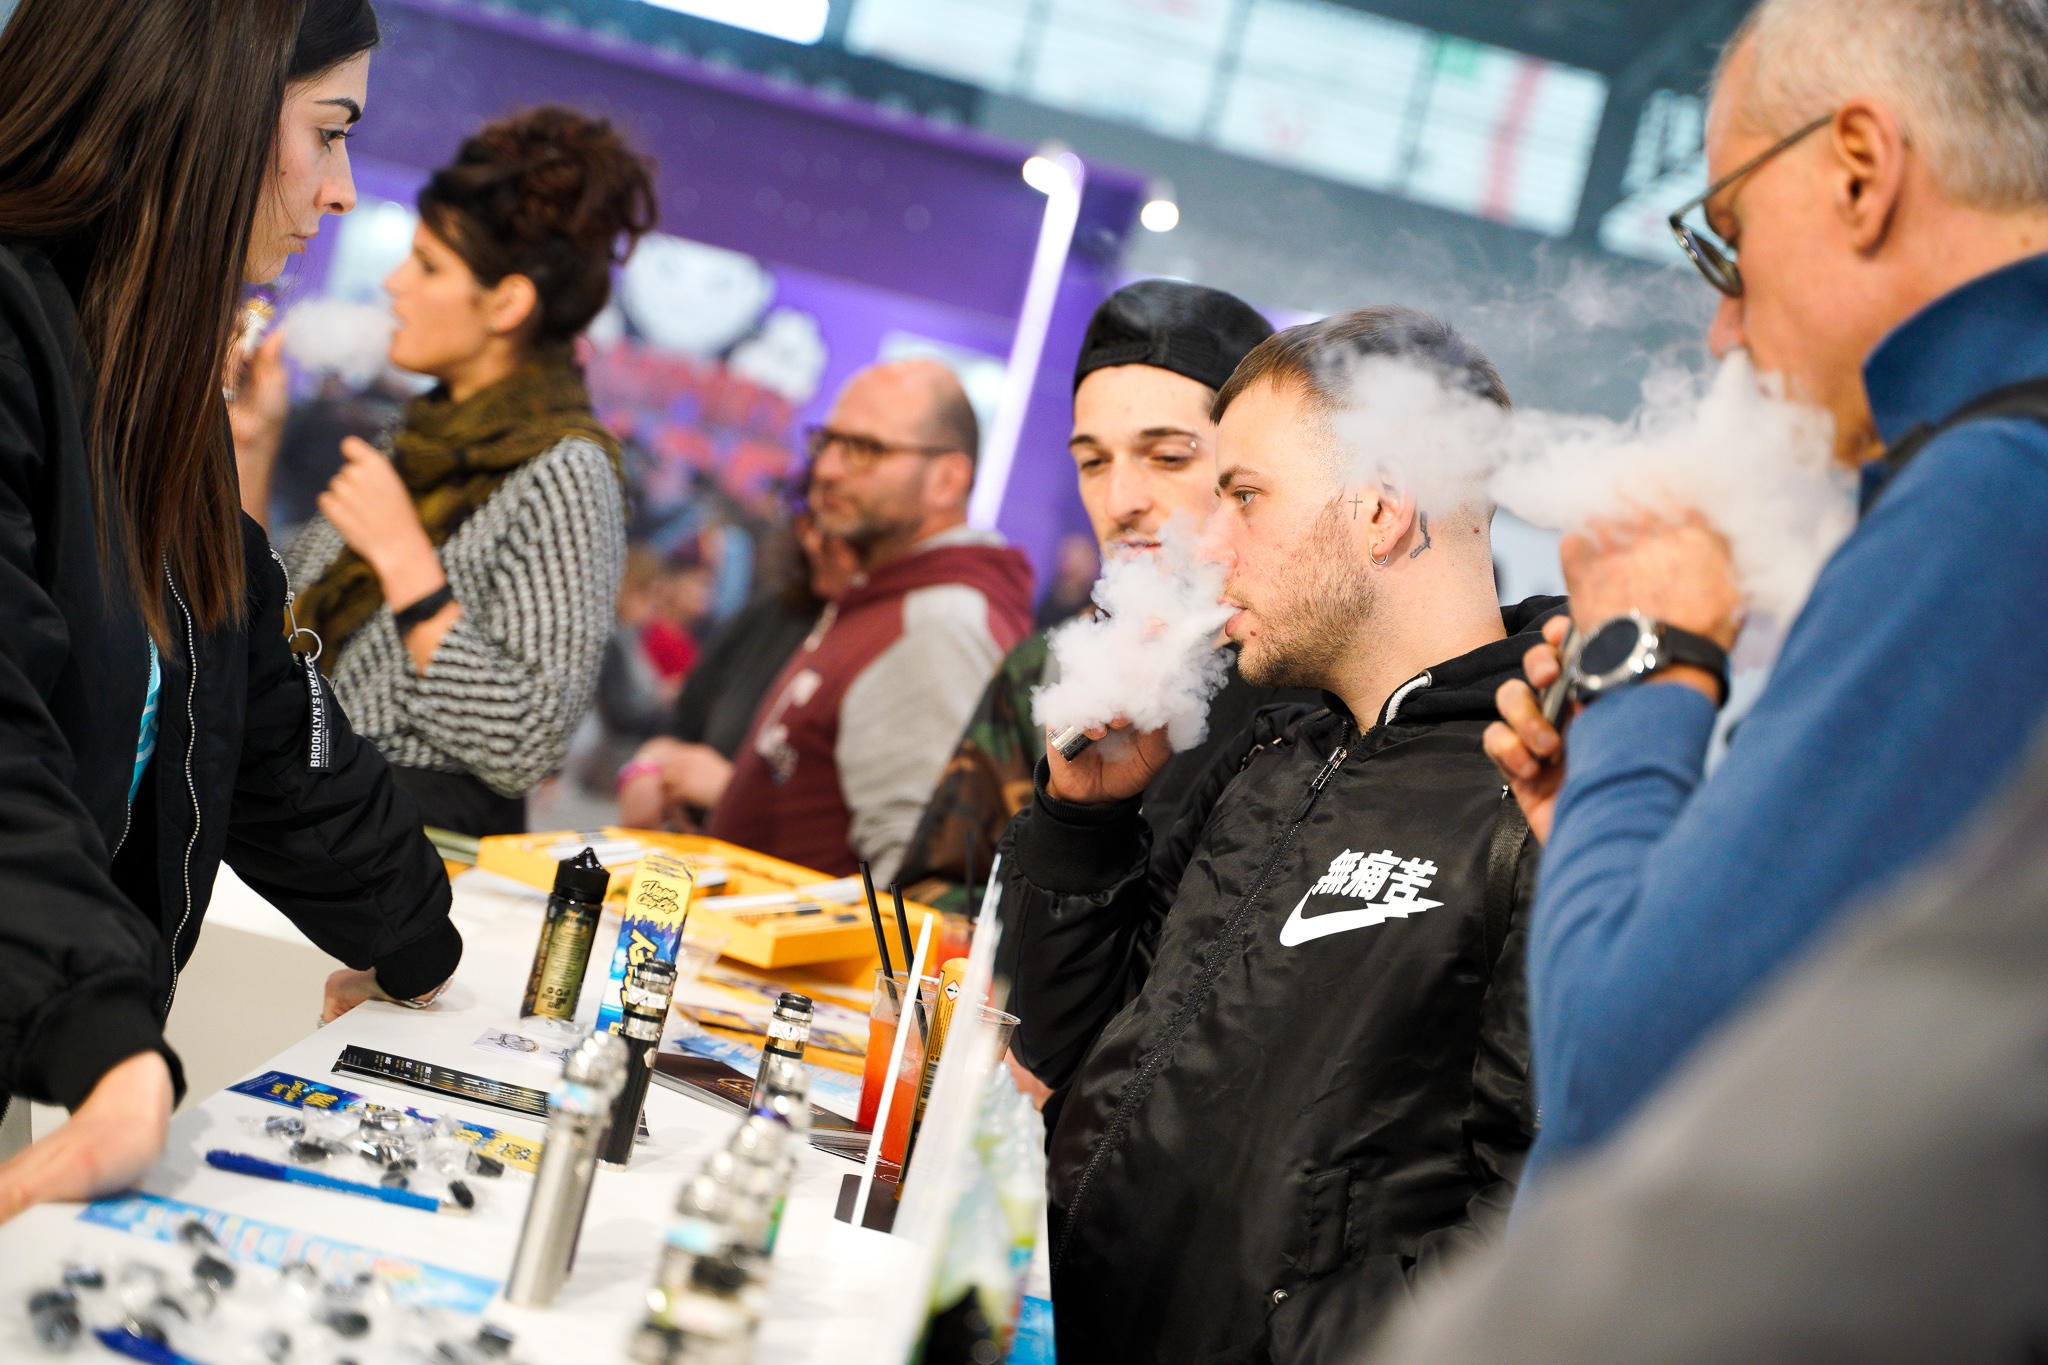 OFFICIAL PRESS RELEASE: At the Fiera Milano Fairgrounds the new edition of the international trade fair devoted to vaping and the electronic cigarette